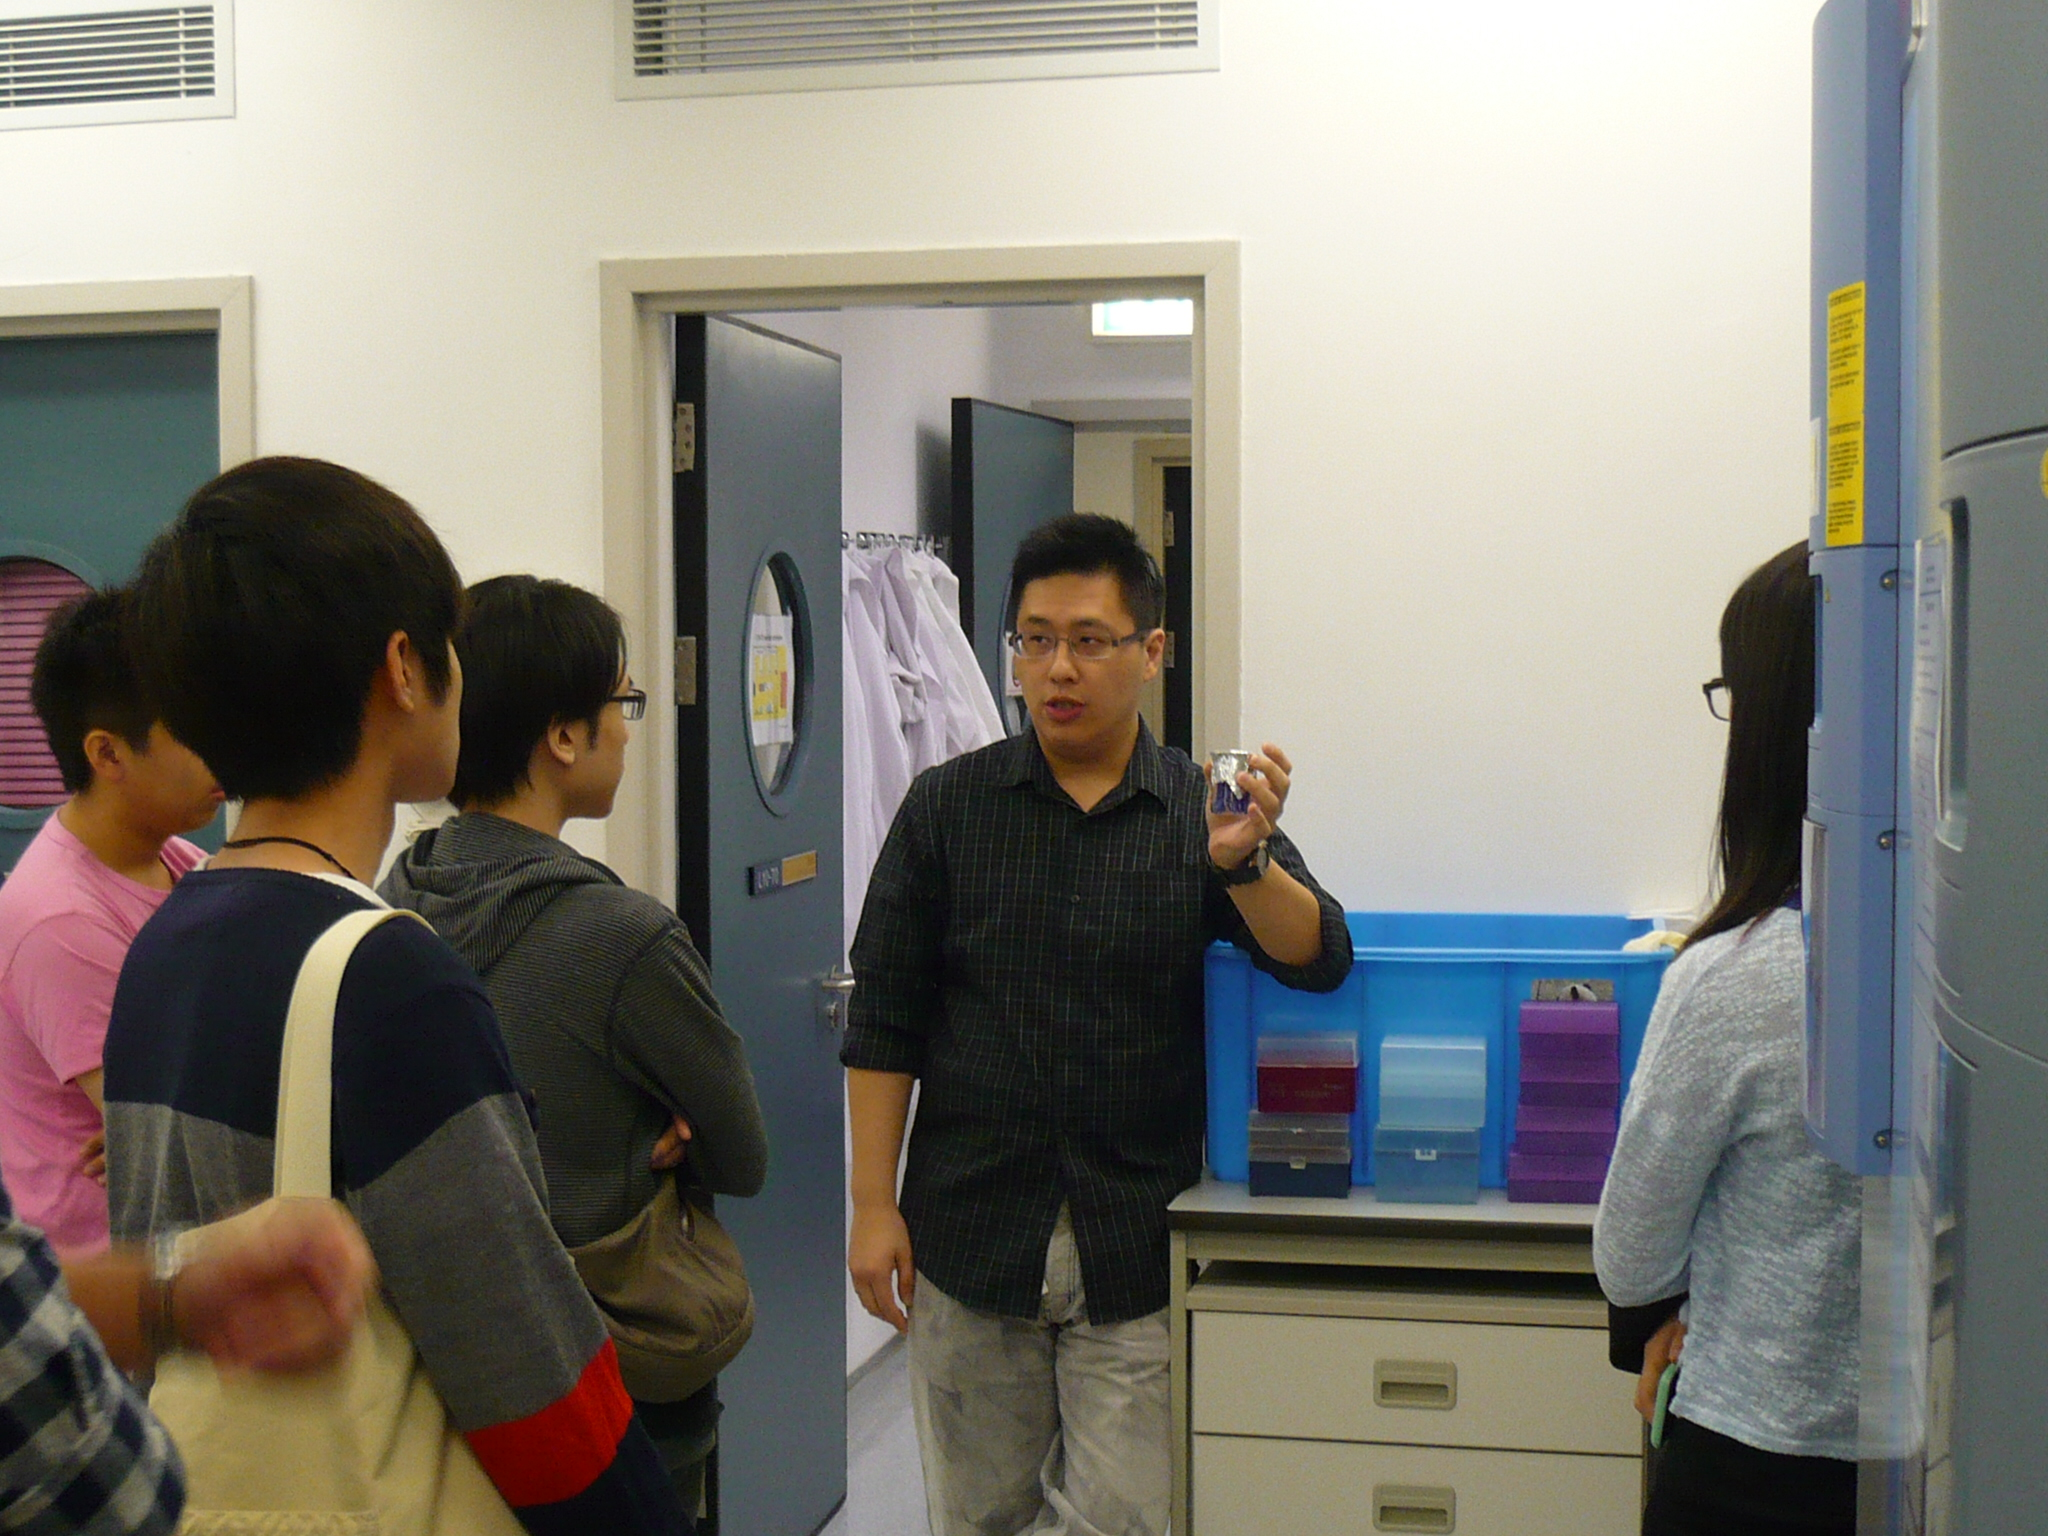 Visit to the Laboratories of the Department of Psychiatry, Li Ka Shing Faculty of Medicine, The University of Hong Kong (HKU) - Photo - 1